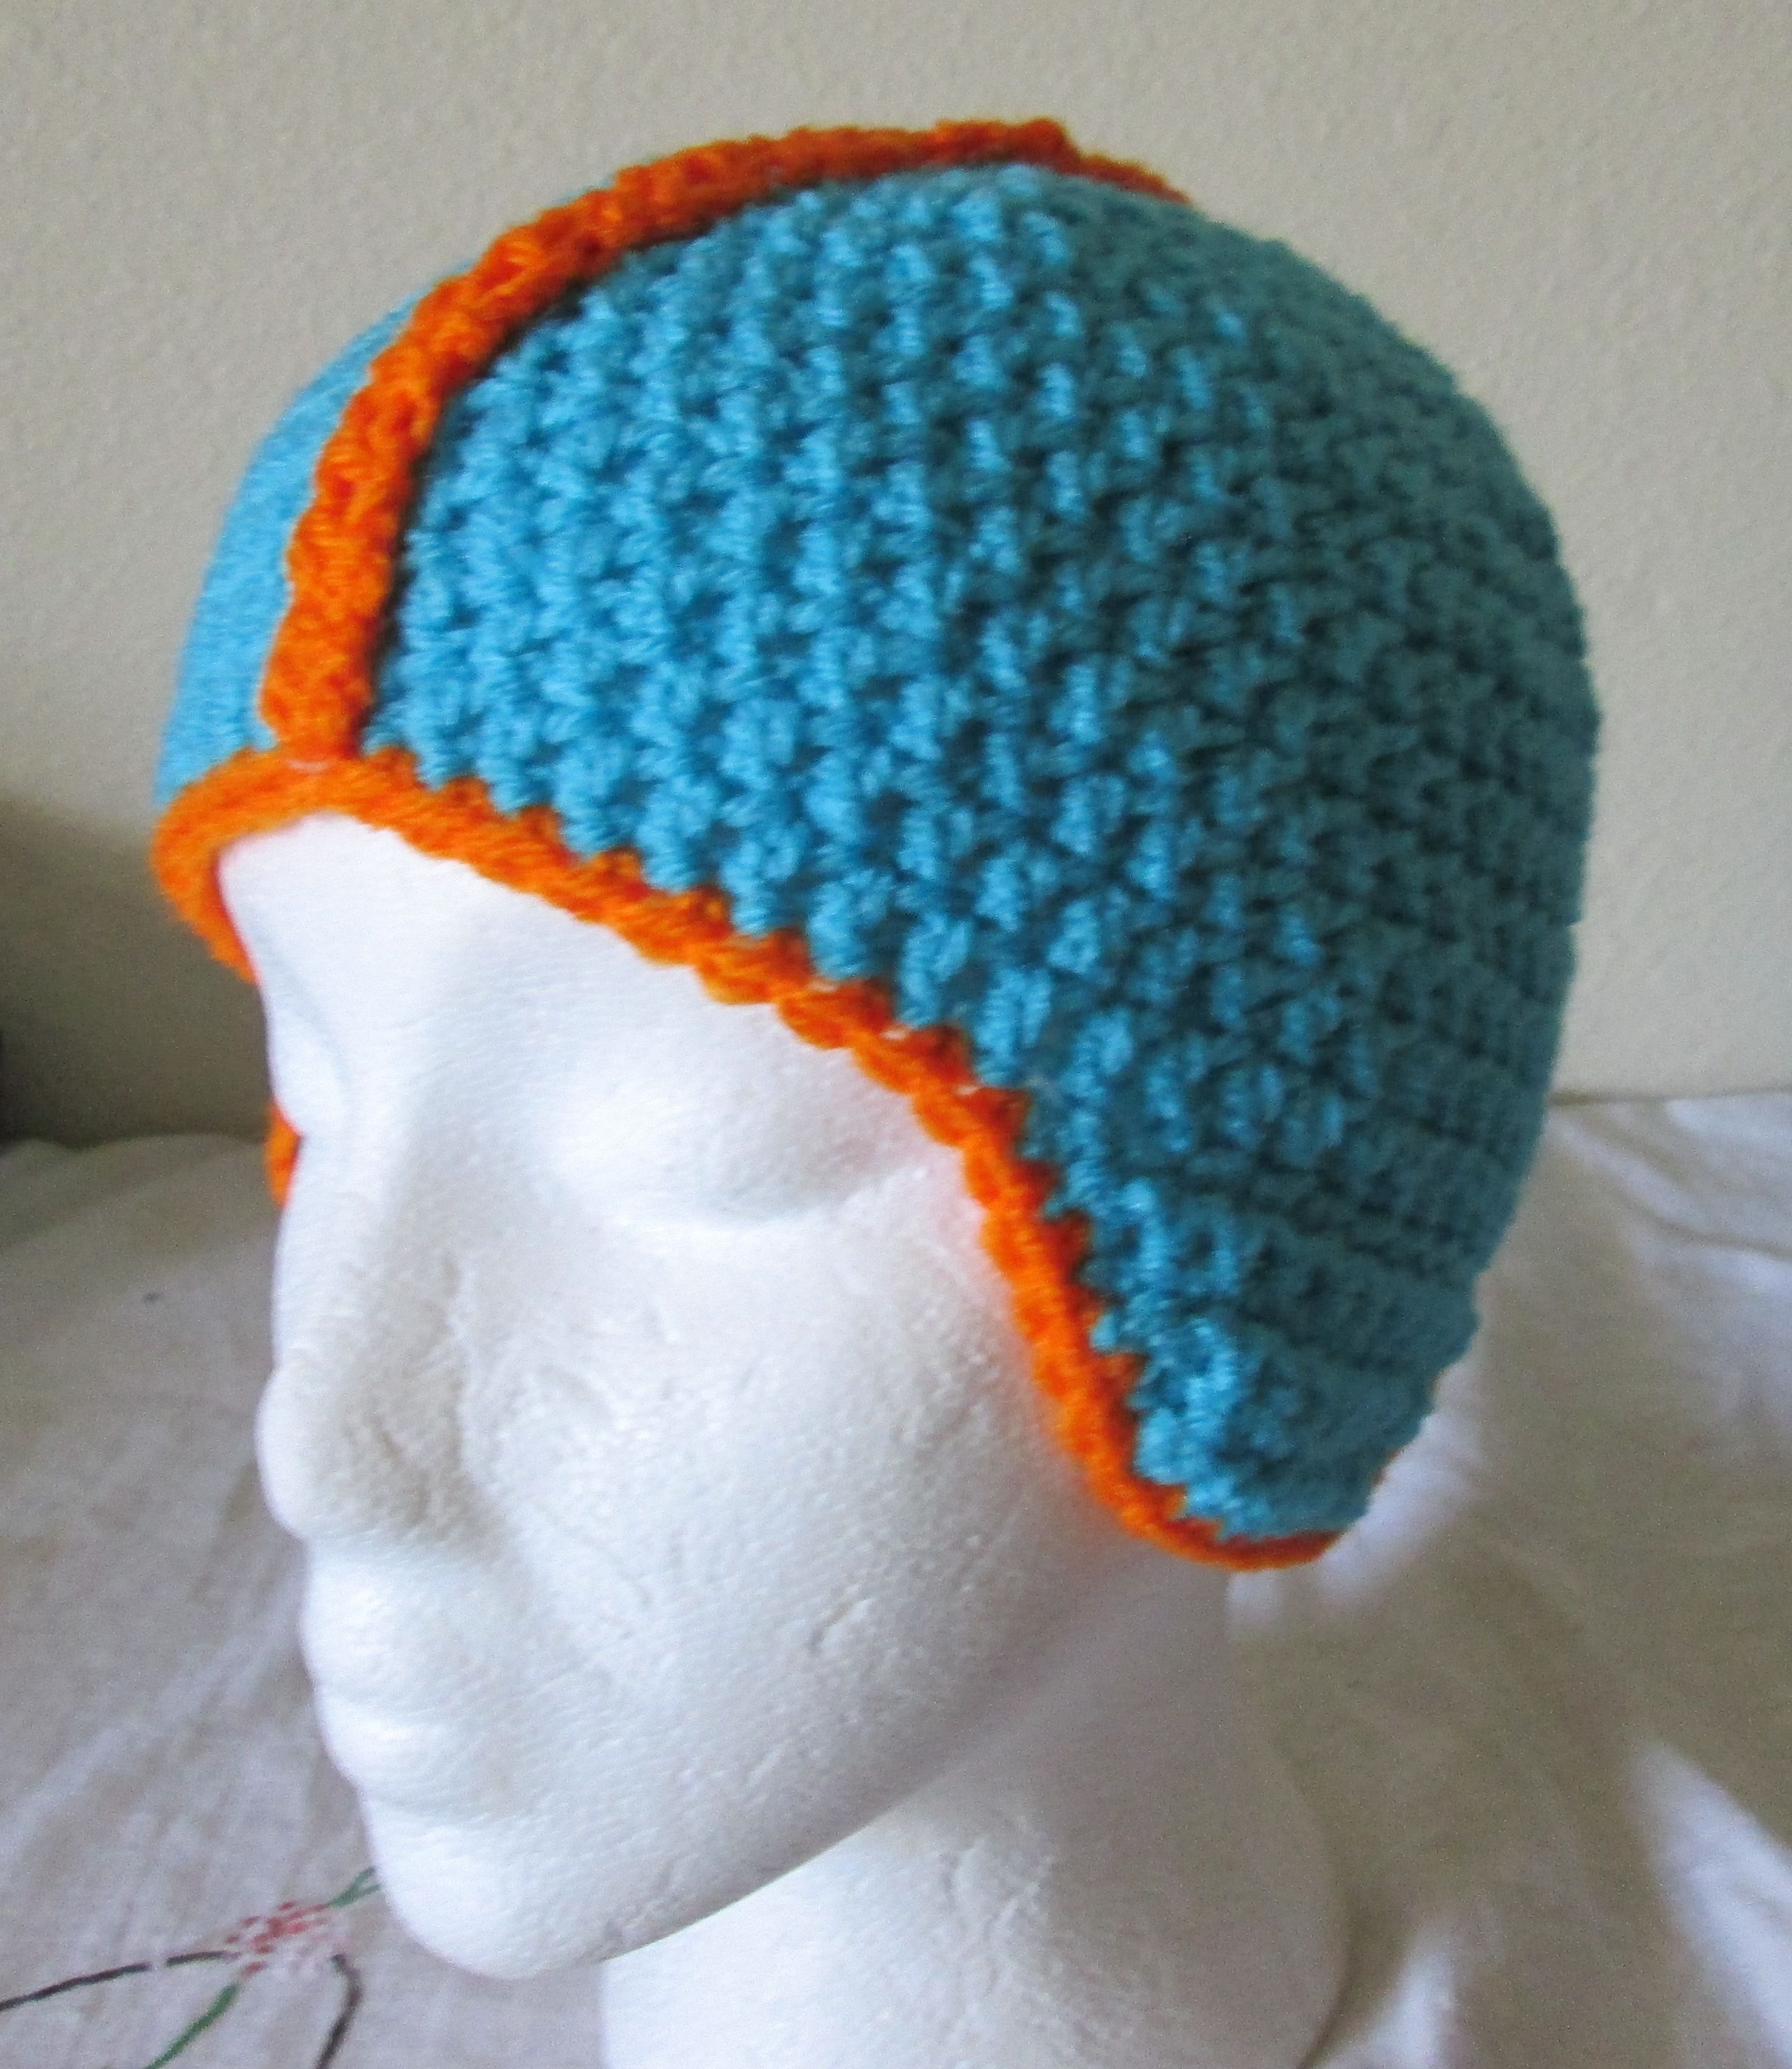 Crochet Miami Dolphins Helmet | My Crocheted Creations For Sale ...